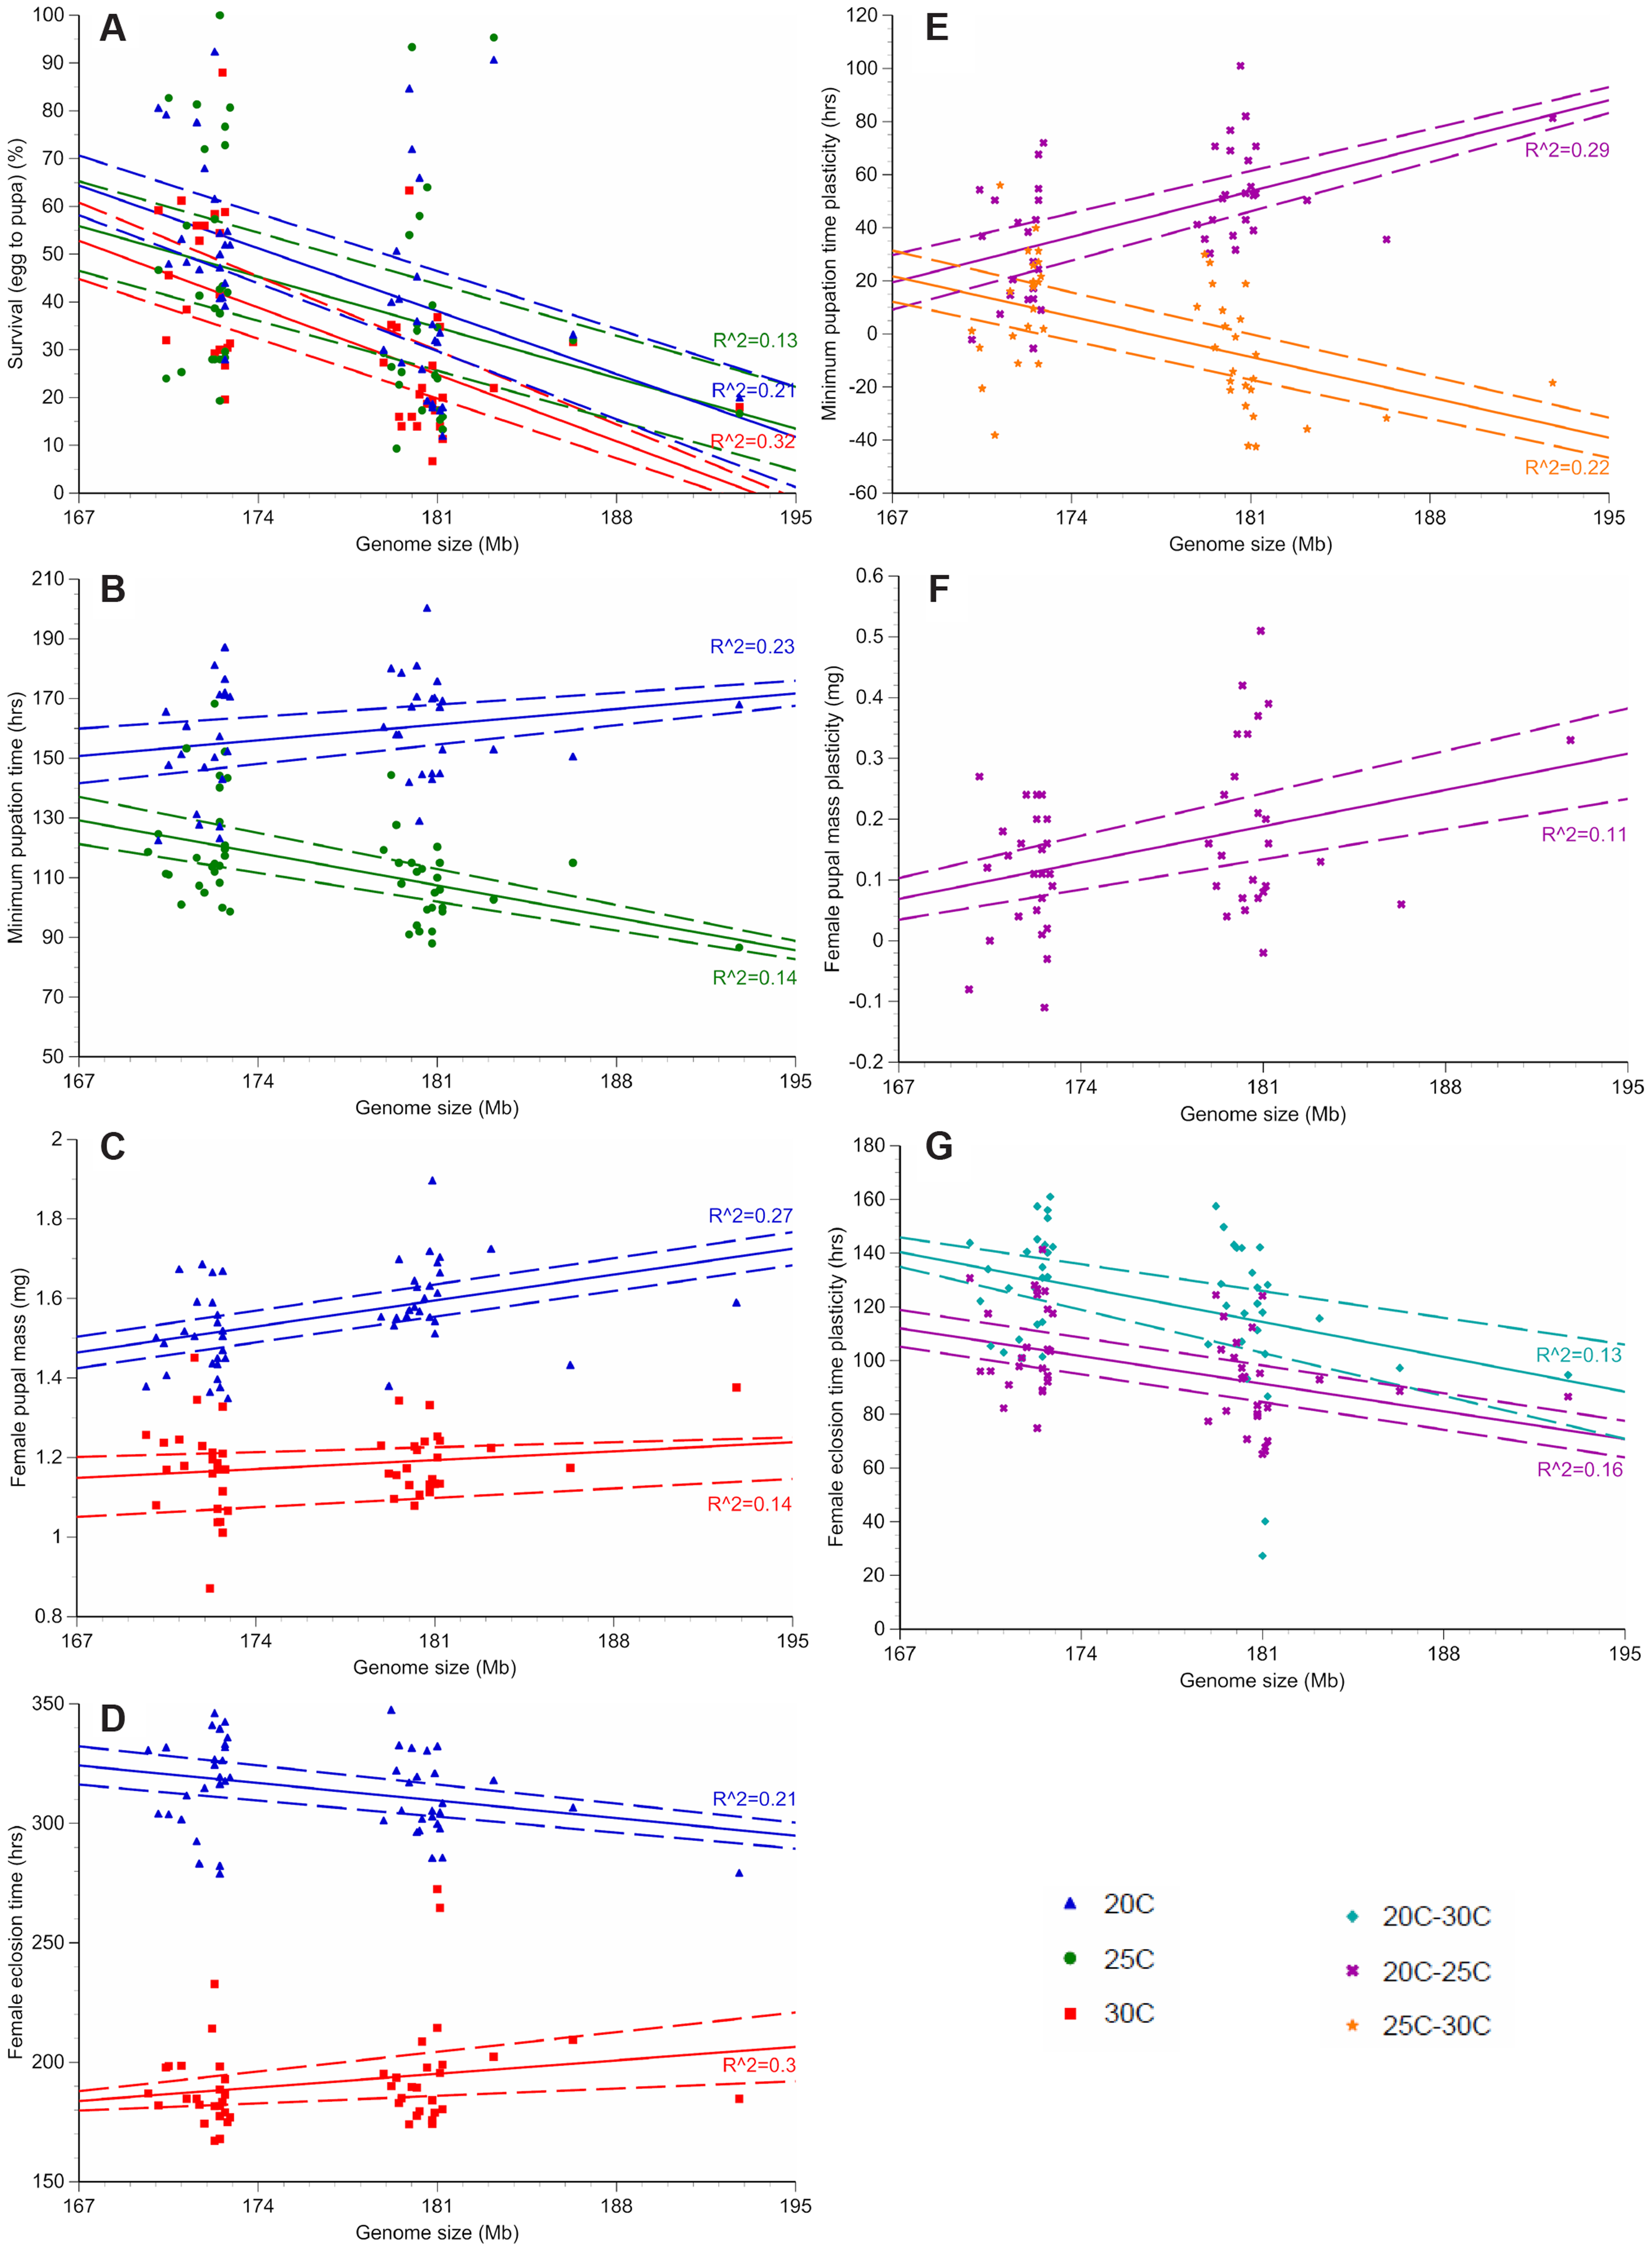 Genome size and temperature affect <i>D. melanogaster</i> development and plasticity.